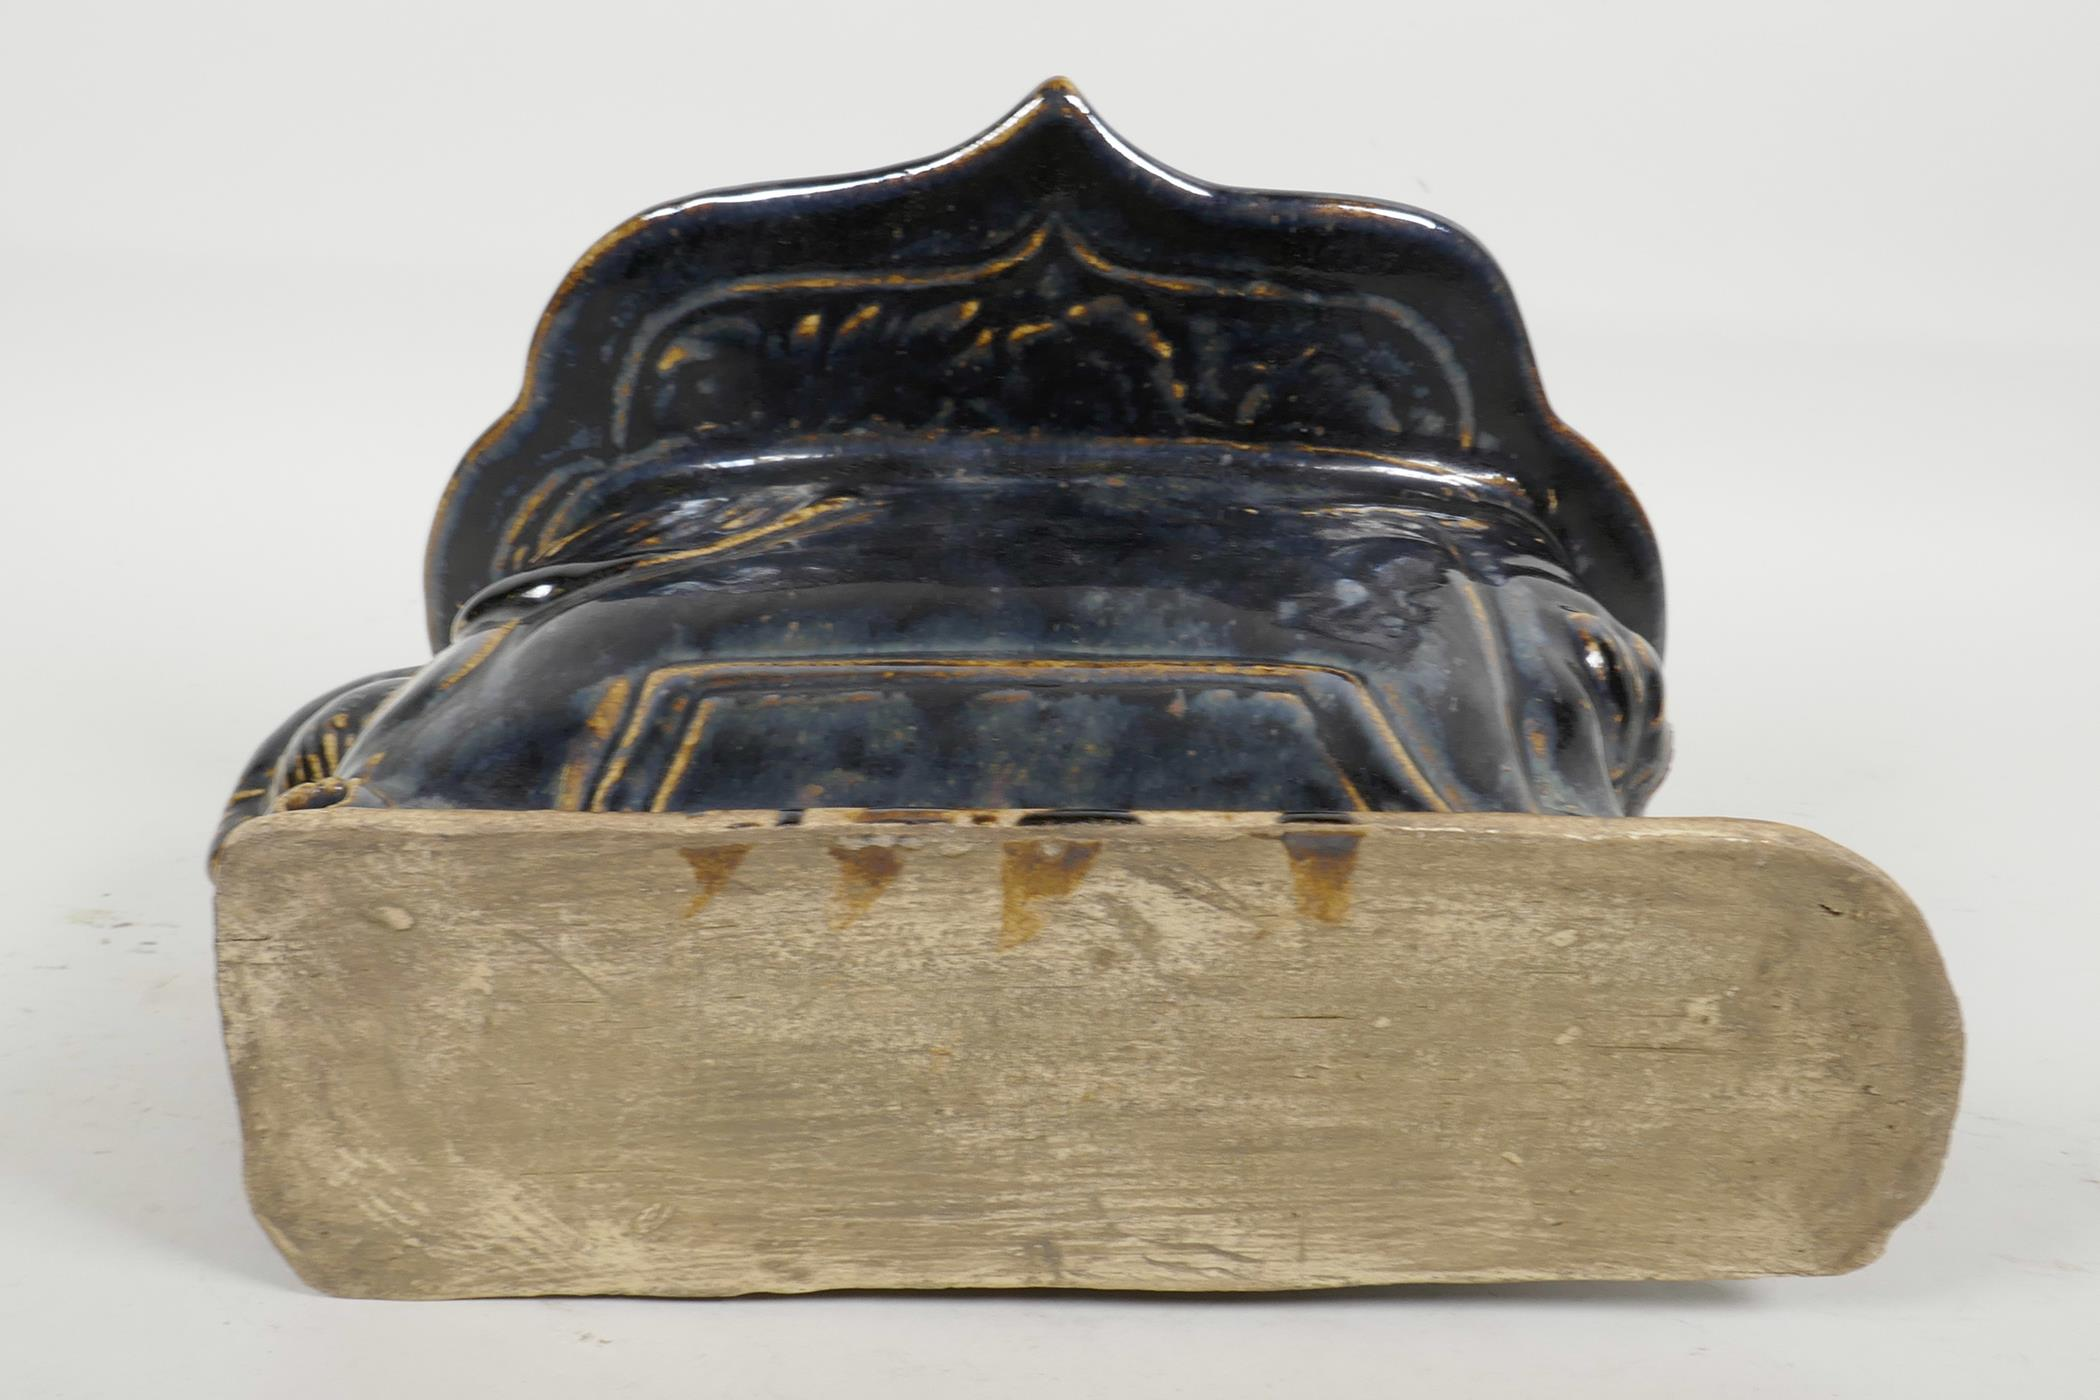 Lot 27 - A Chinese Cizhou kiln pottery head rest moulded in the form of a reclining figure, with blue black